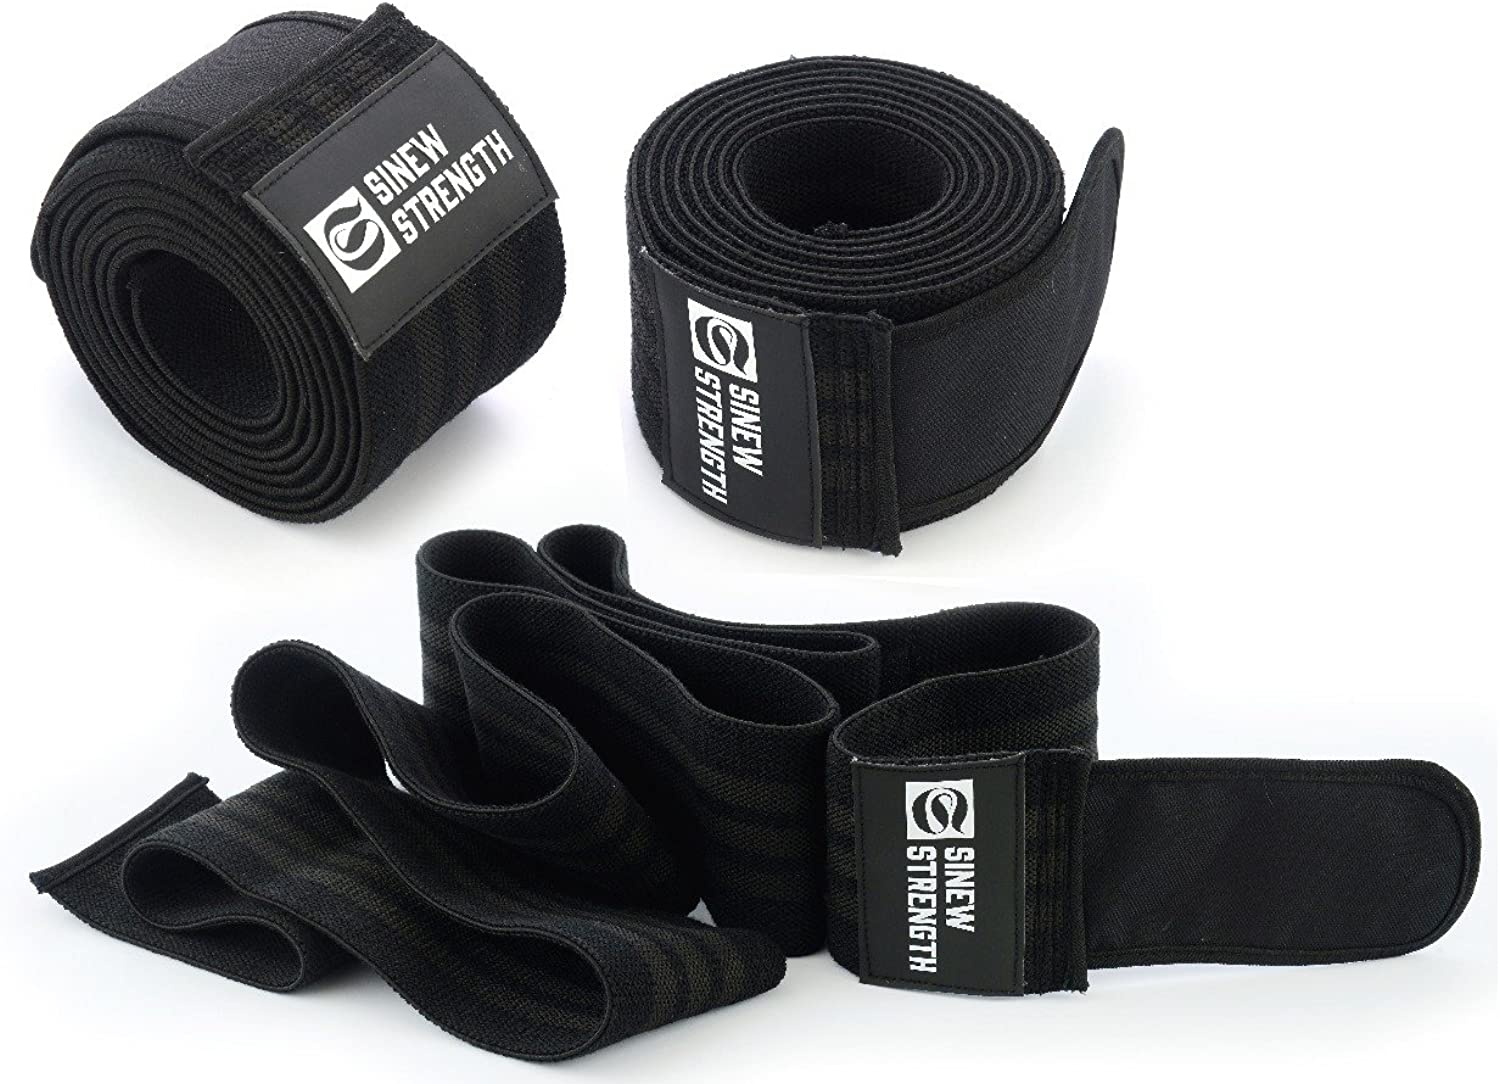 SINEW STRENGTH Knee Wraps (Pair)Knee Support for Weight Lifting, Powerlifting, Bodybuilding